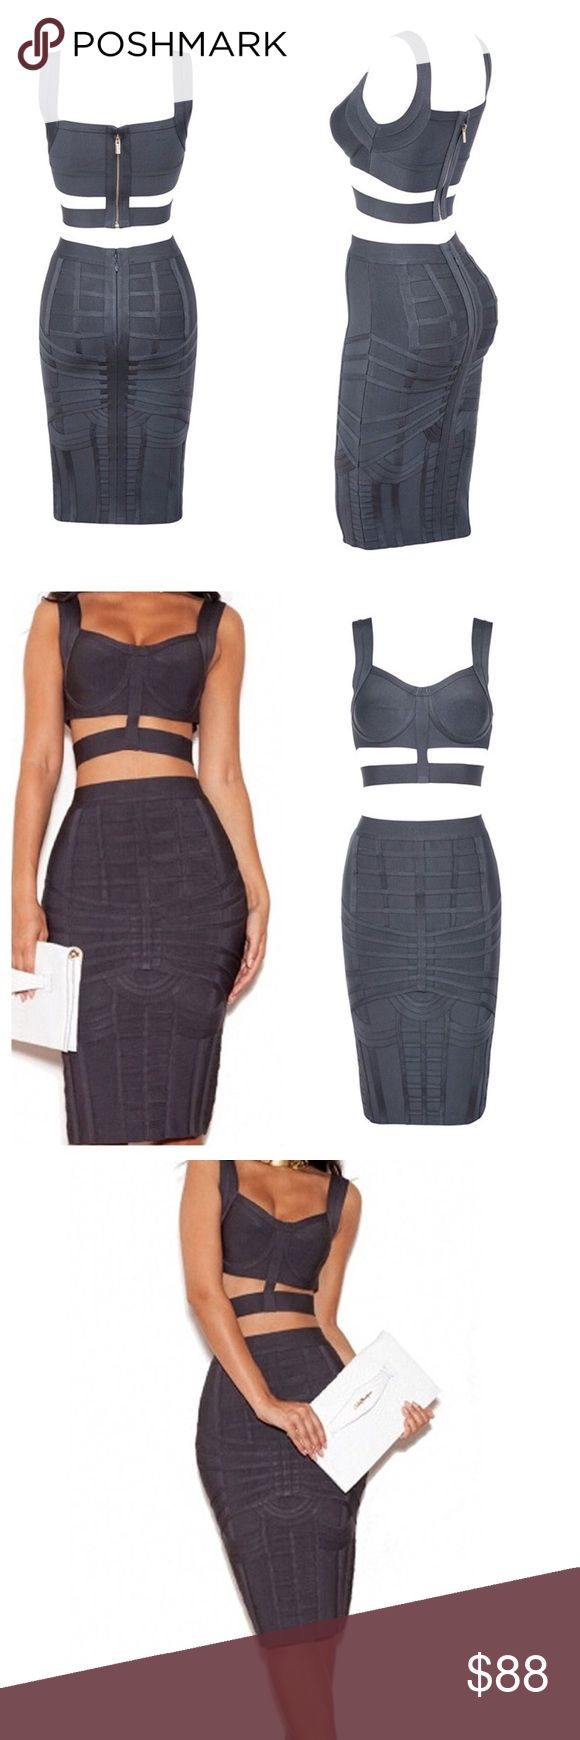 Bodycon Top Skirt Set 2 Pieces Party Bandage Brand-new Women's Rayon Bodycon Top Skirt Set 2 Pieces Party Bandage Midi Dres: Size medium. Not a smoke free 🏡 No return policy Skirts